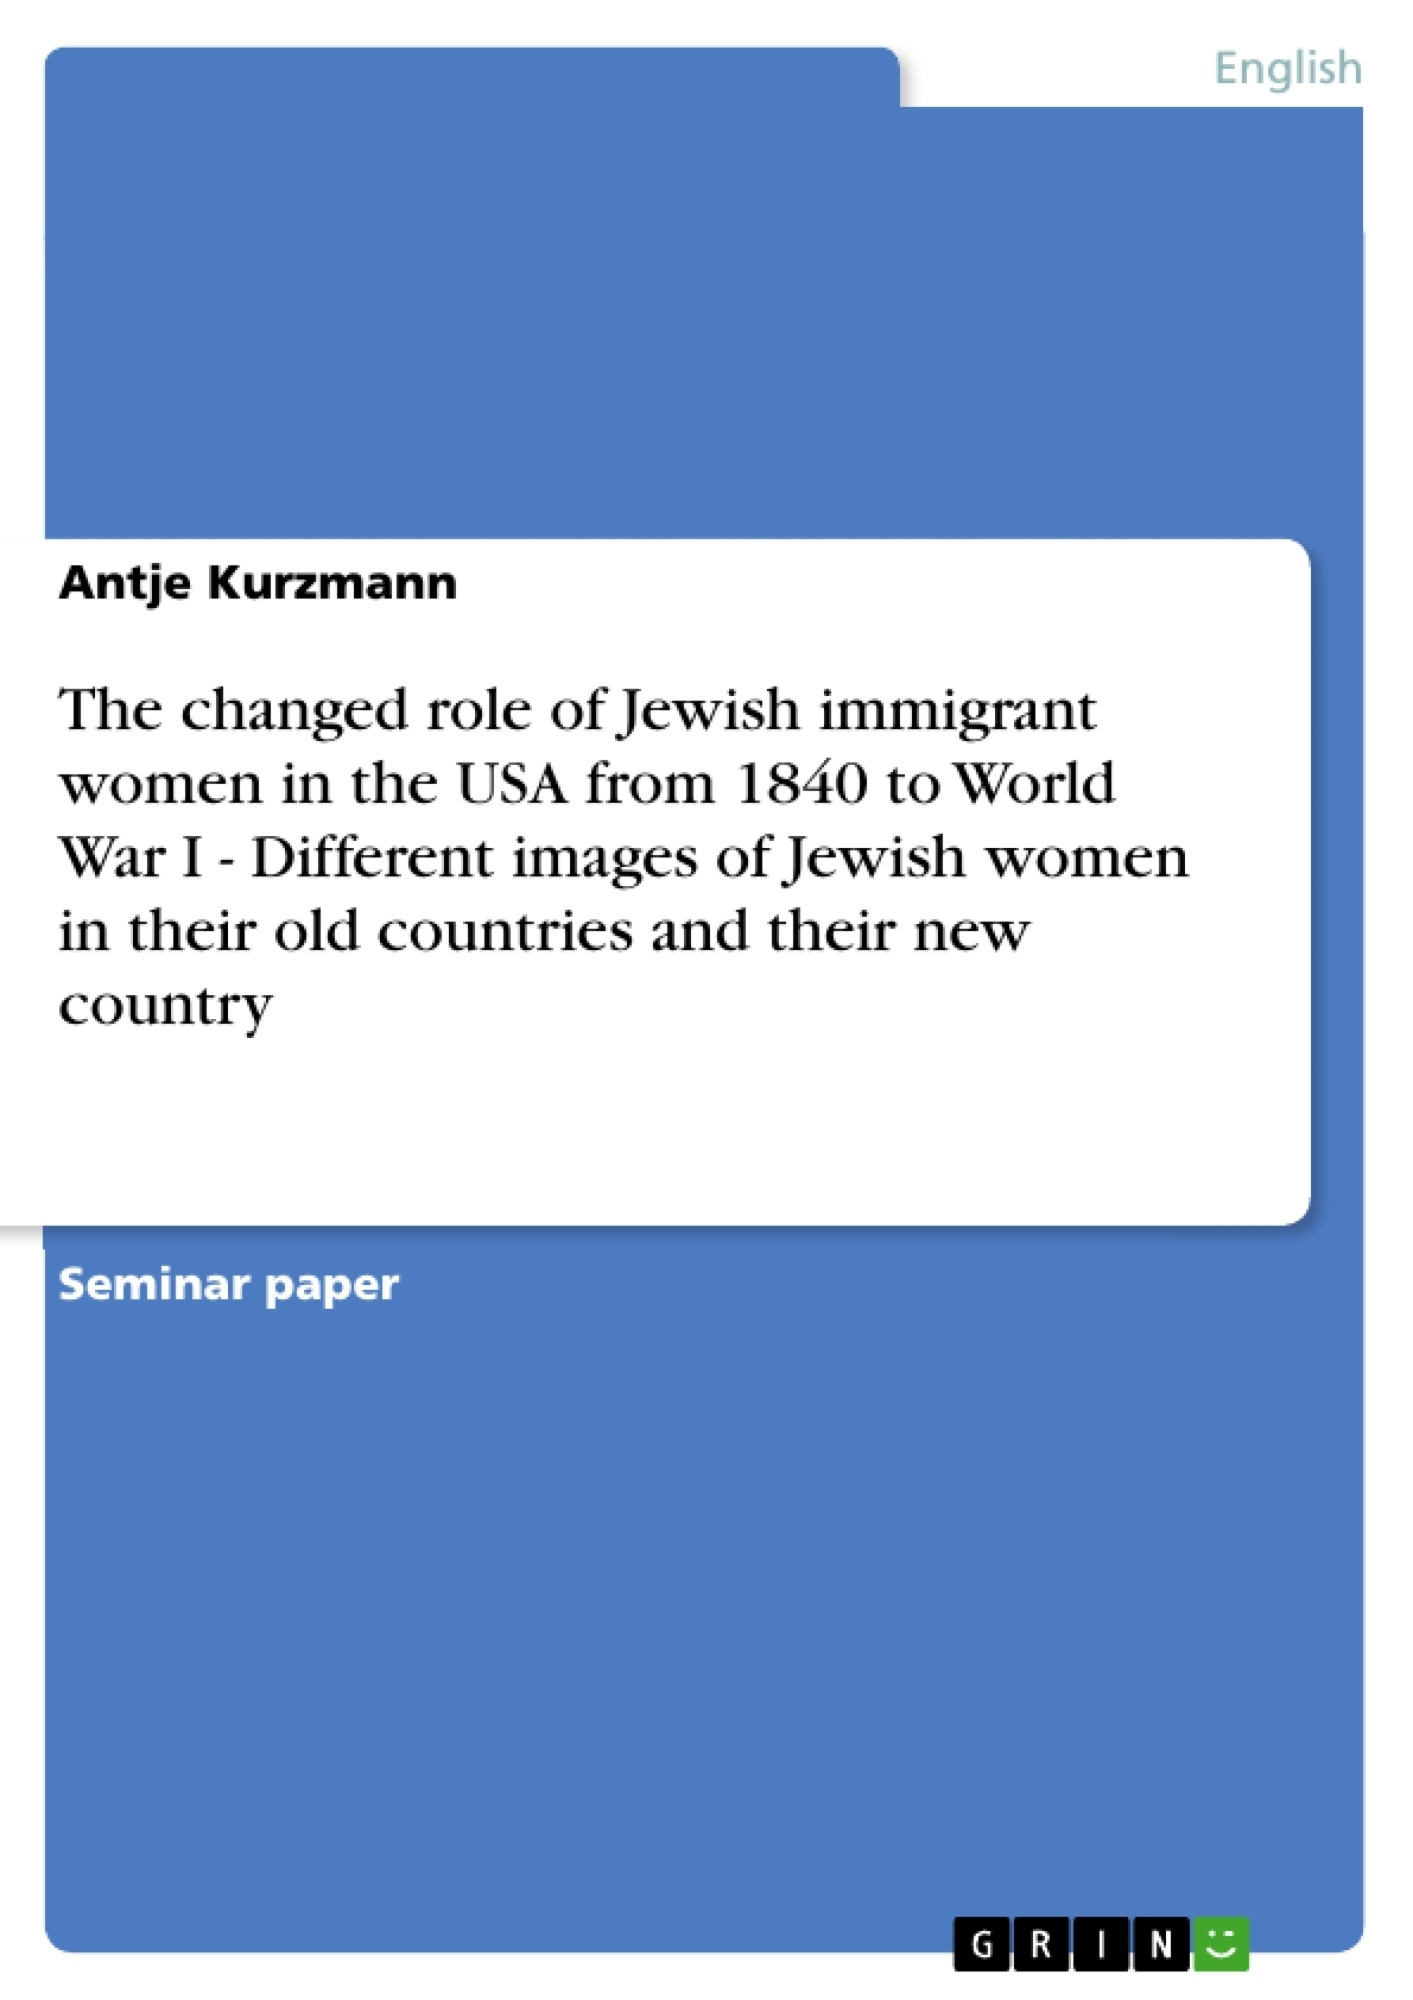 Title: The changed role of Jewish immigrant women in the USA from 1840 to World War I - Different images of Jewish women in their old countries and their new country